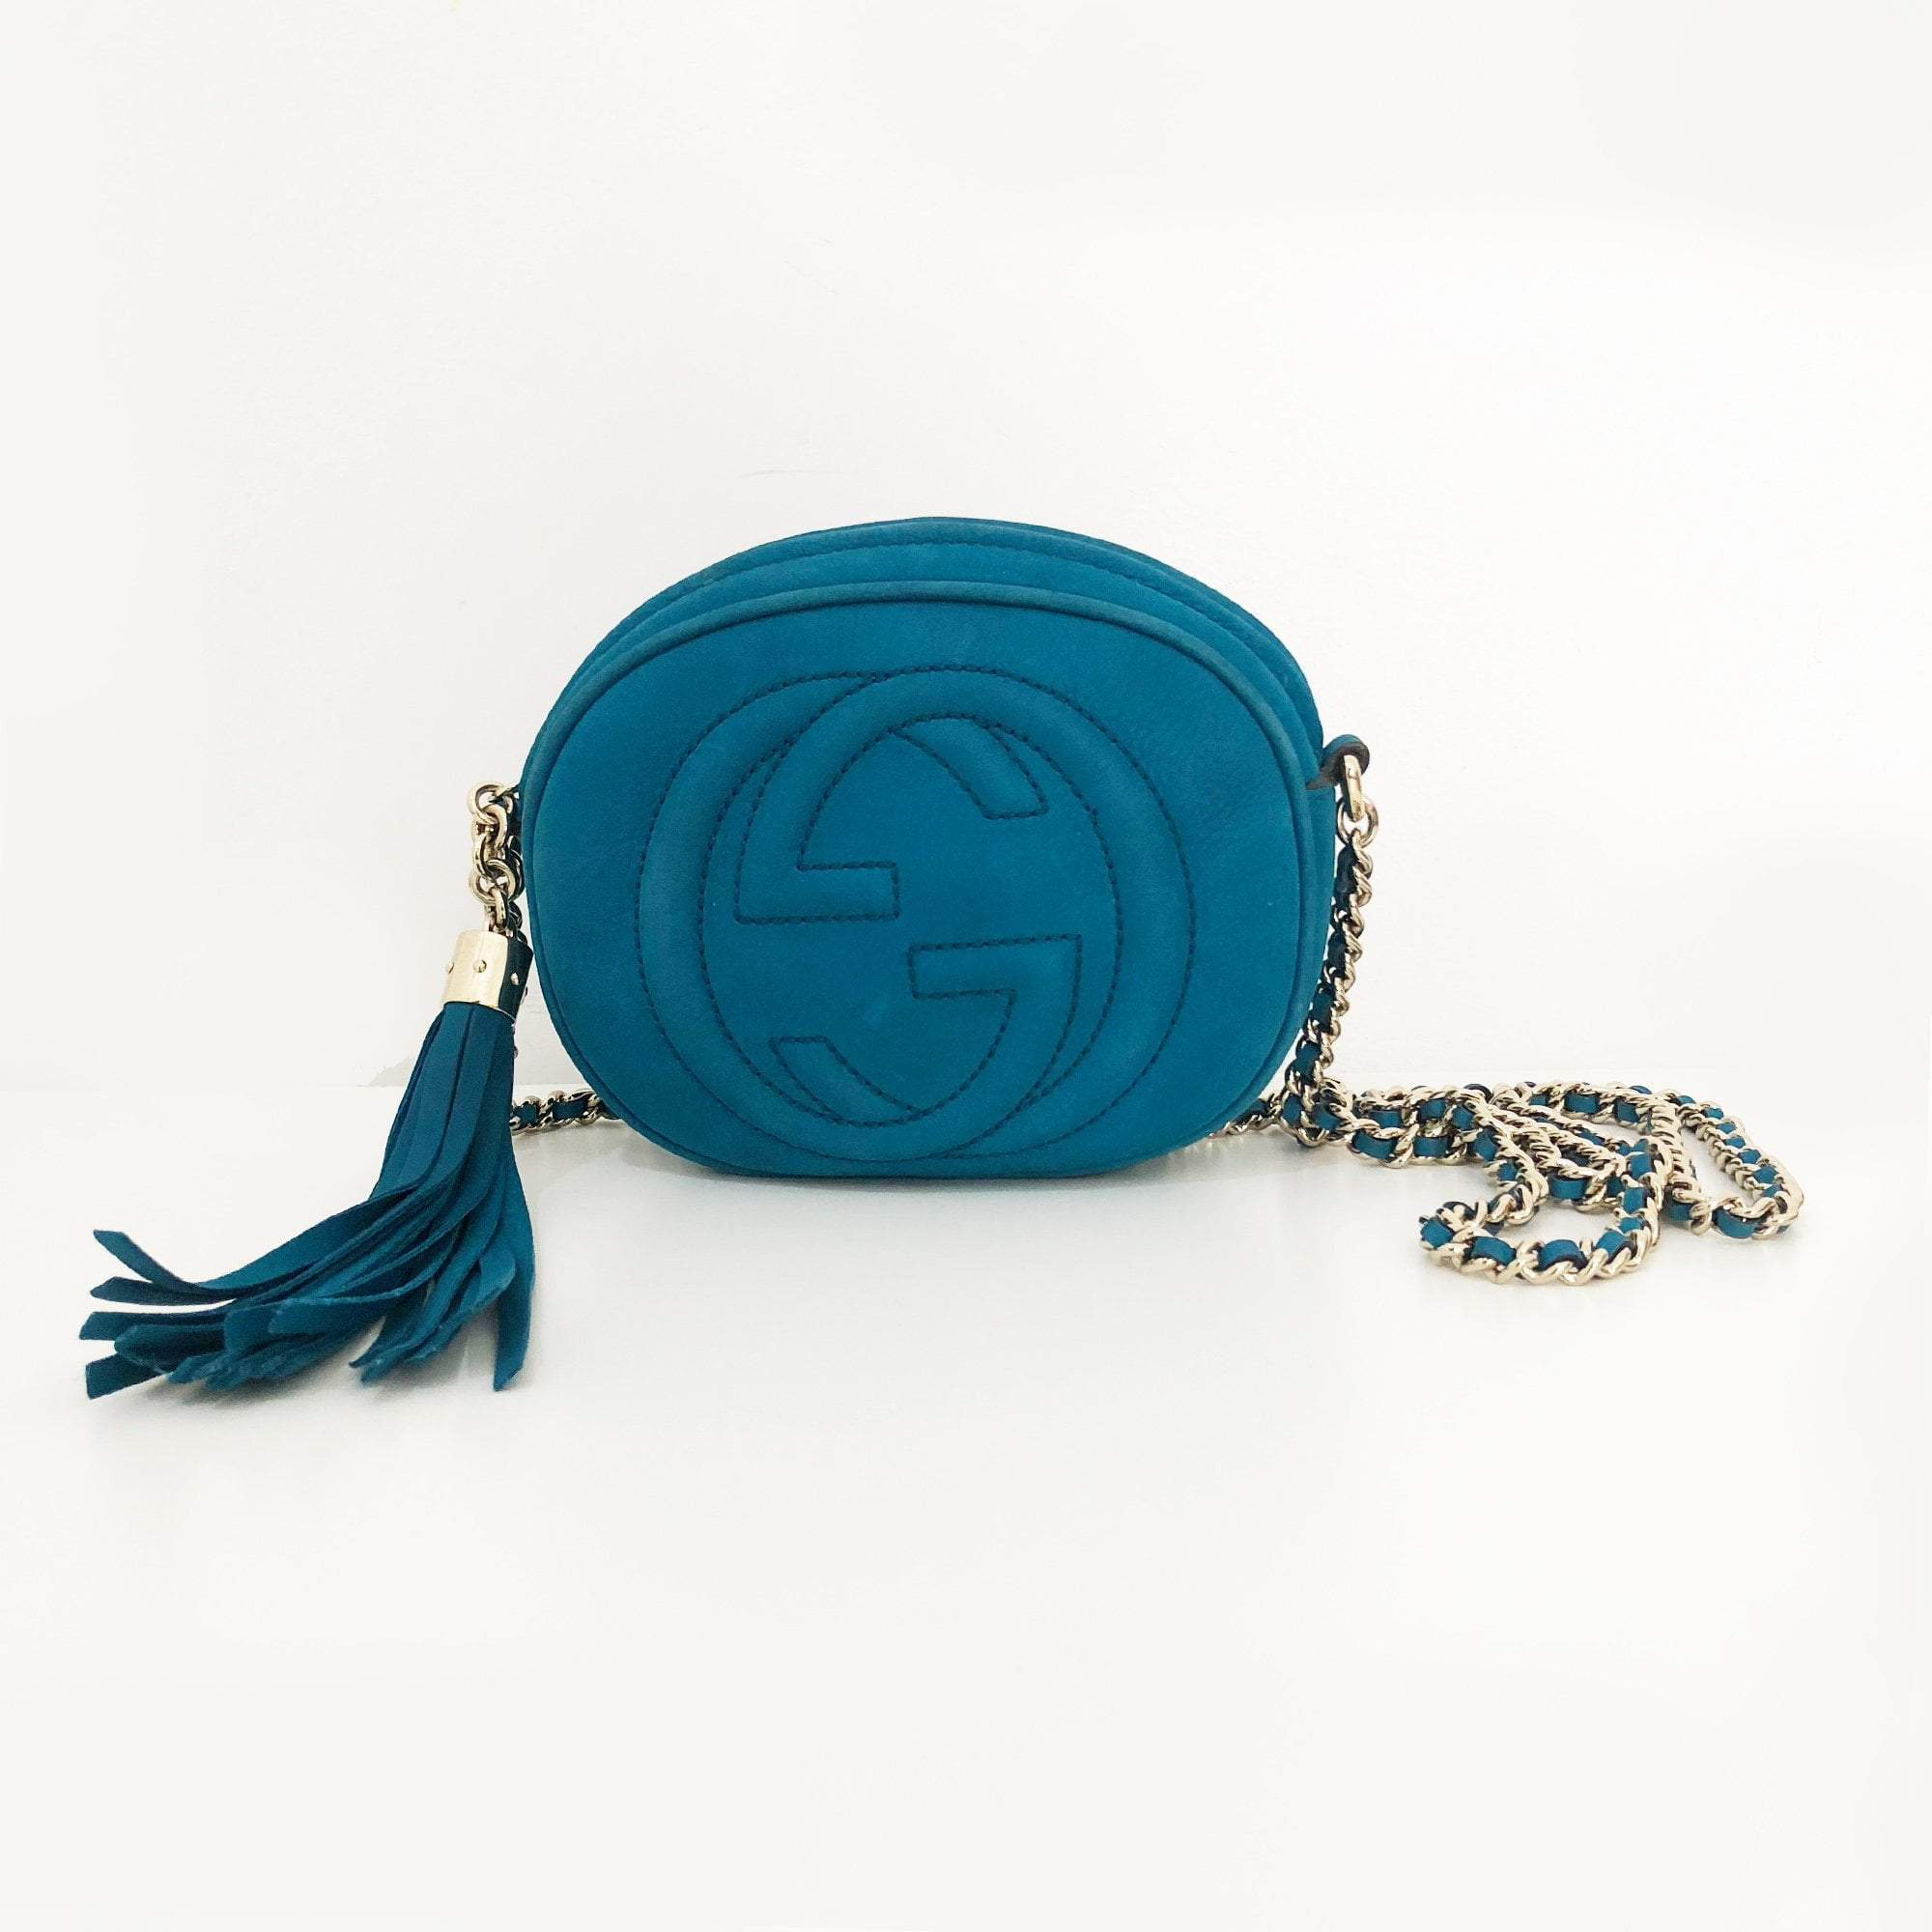 Gucci Soho Nubuck Leather Mini Chain Bag, Turquoise